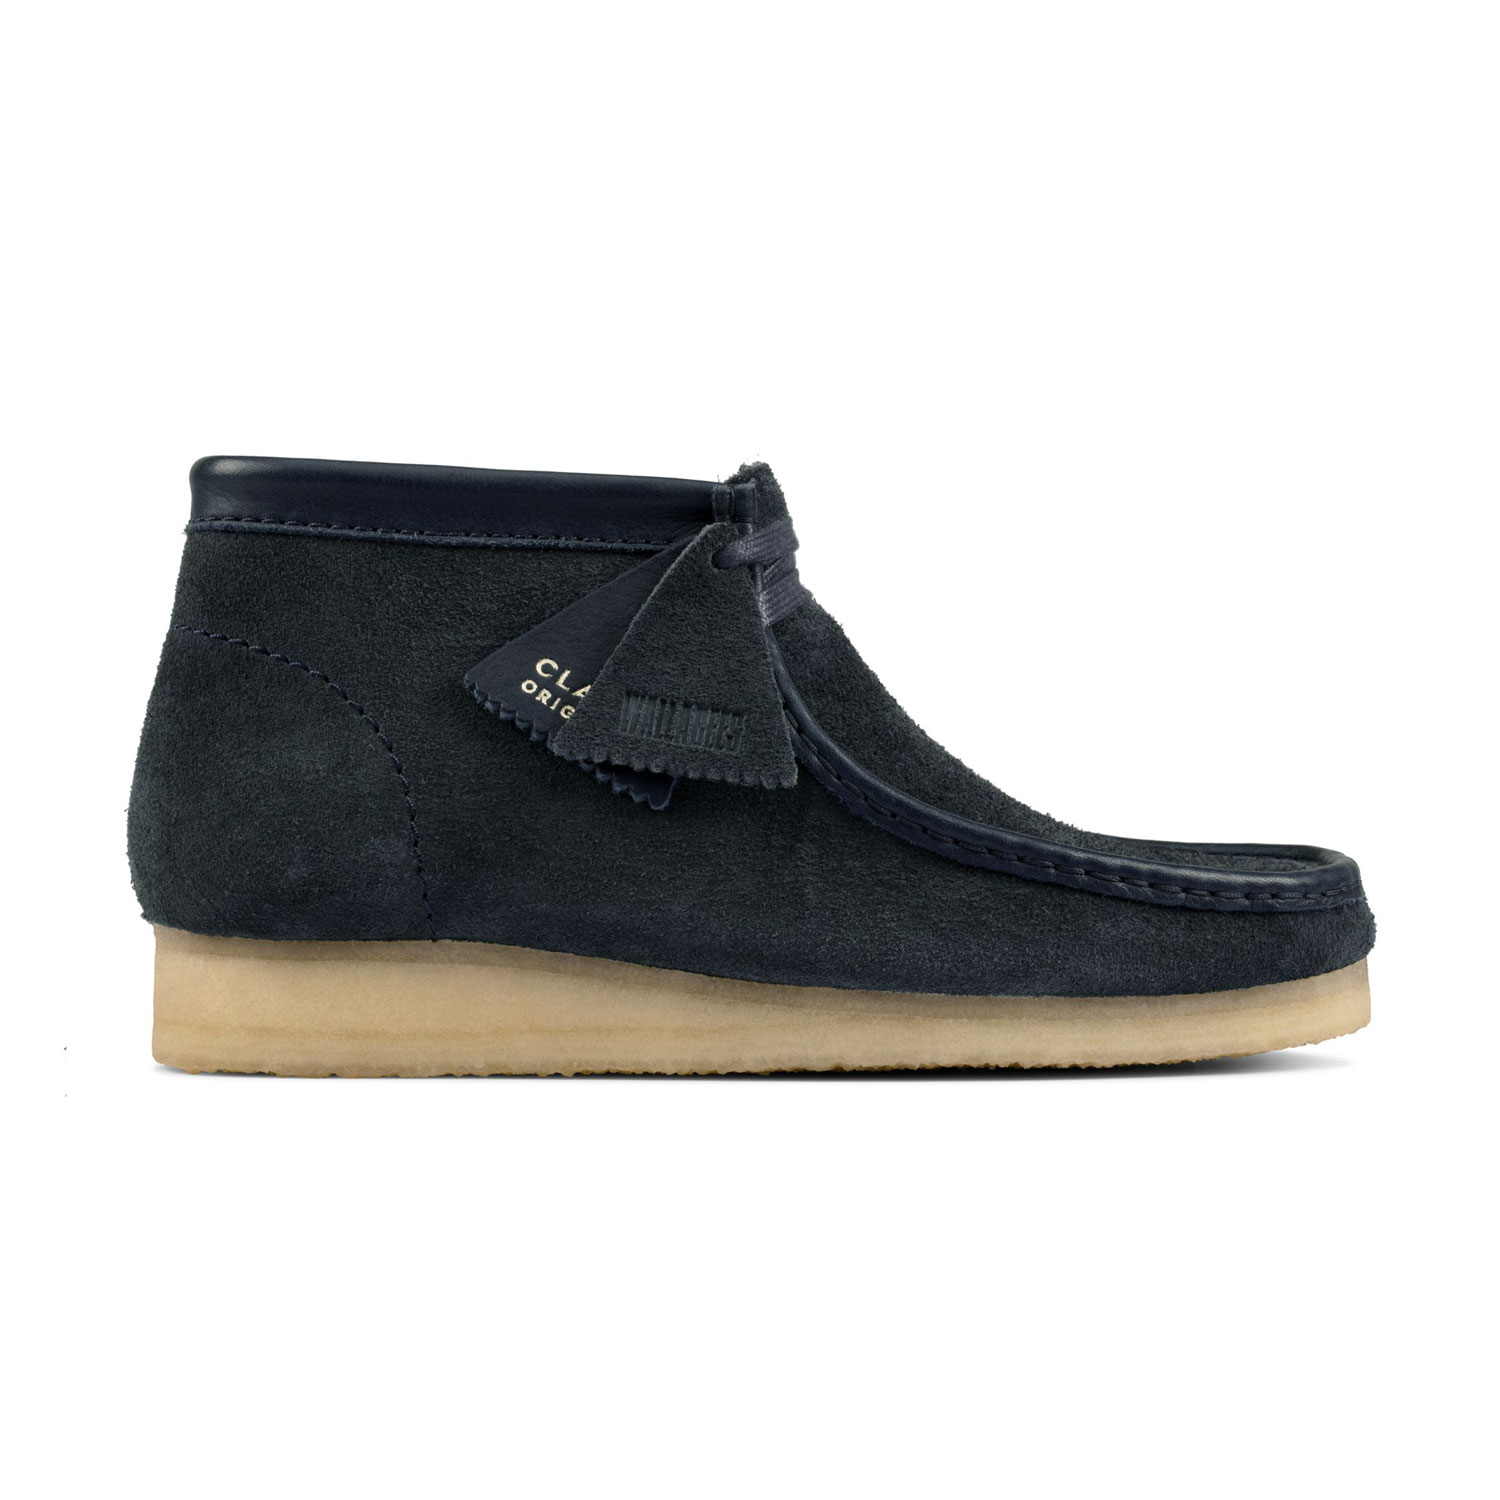 Clarks Wallabee Boot - Navy/Hairy Suede 0